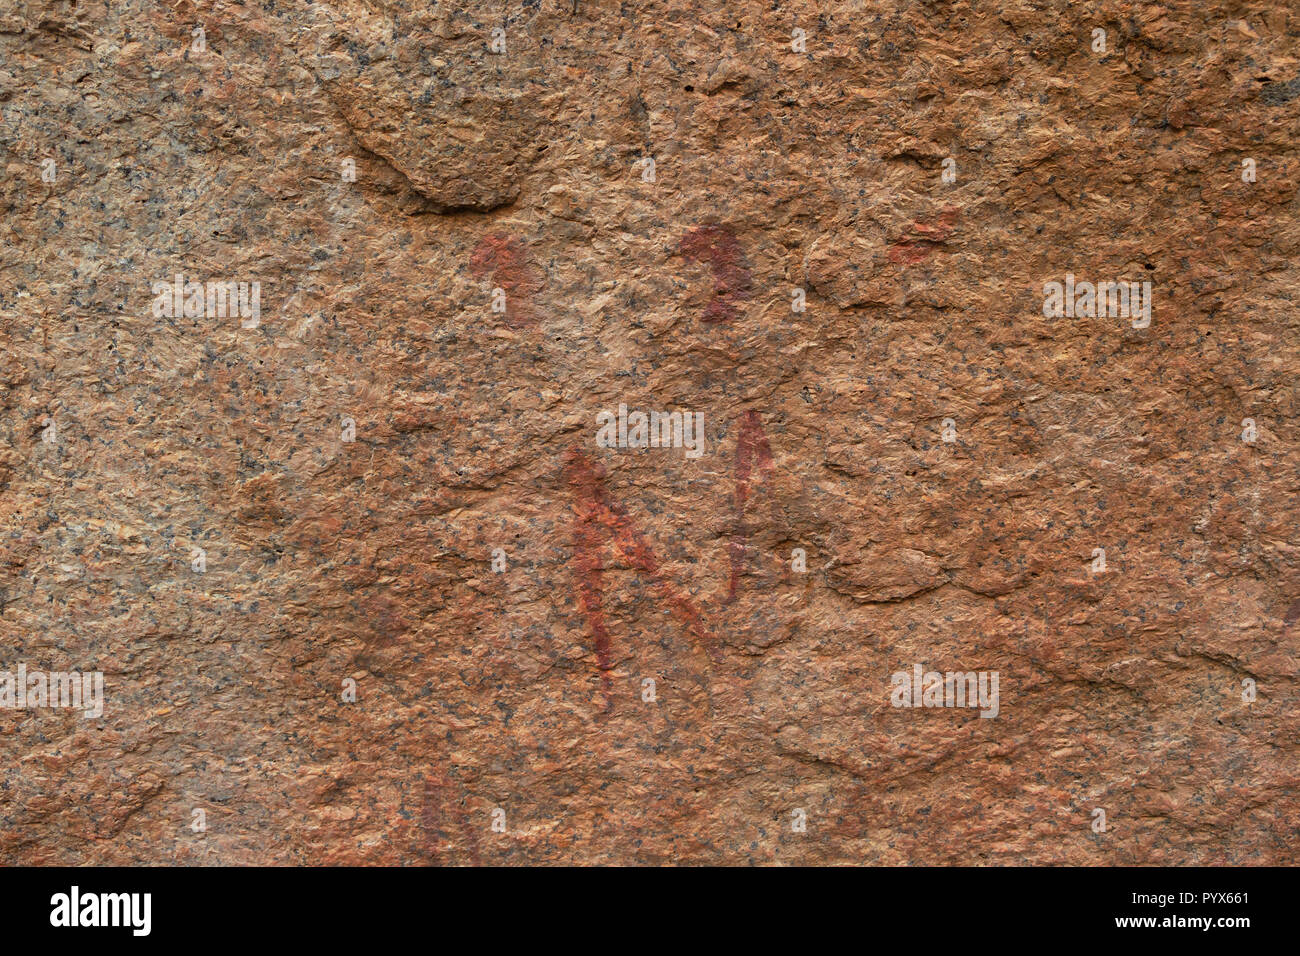 Namibia rock painting - ancient rock art by bushmen showing two men, or shamen, Small Bushman Paradise, Spitzkoppe, Namibia Africa - Stock Image